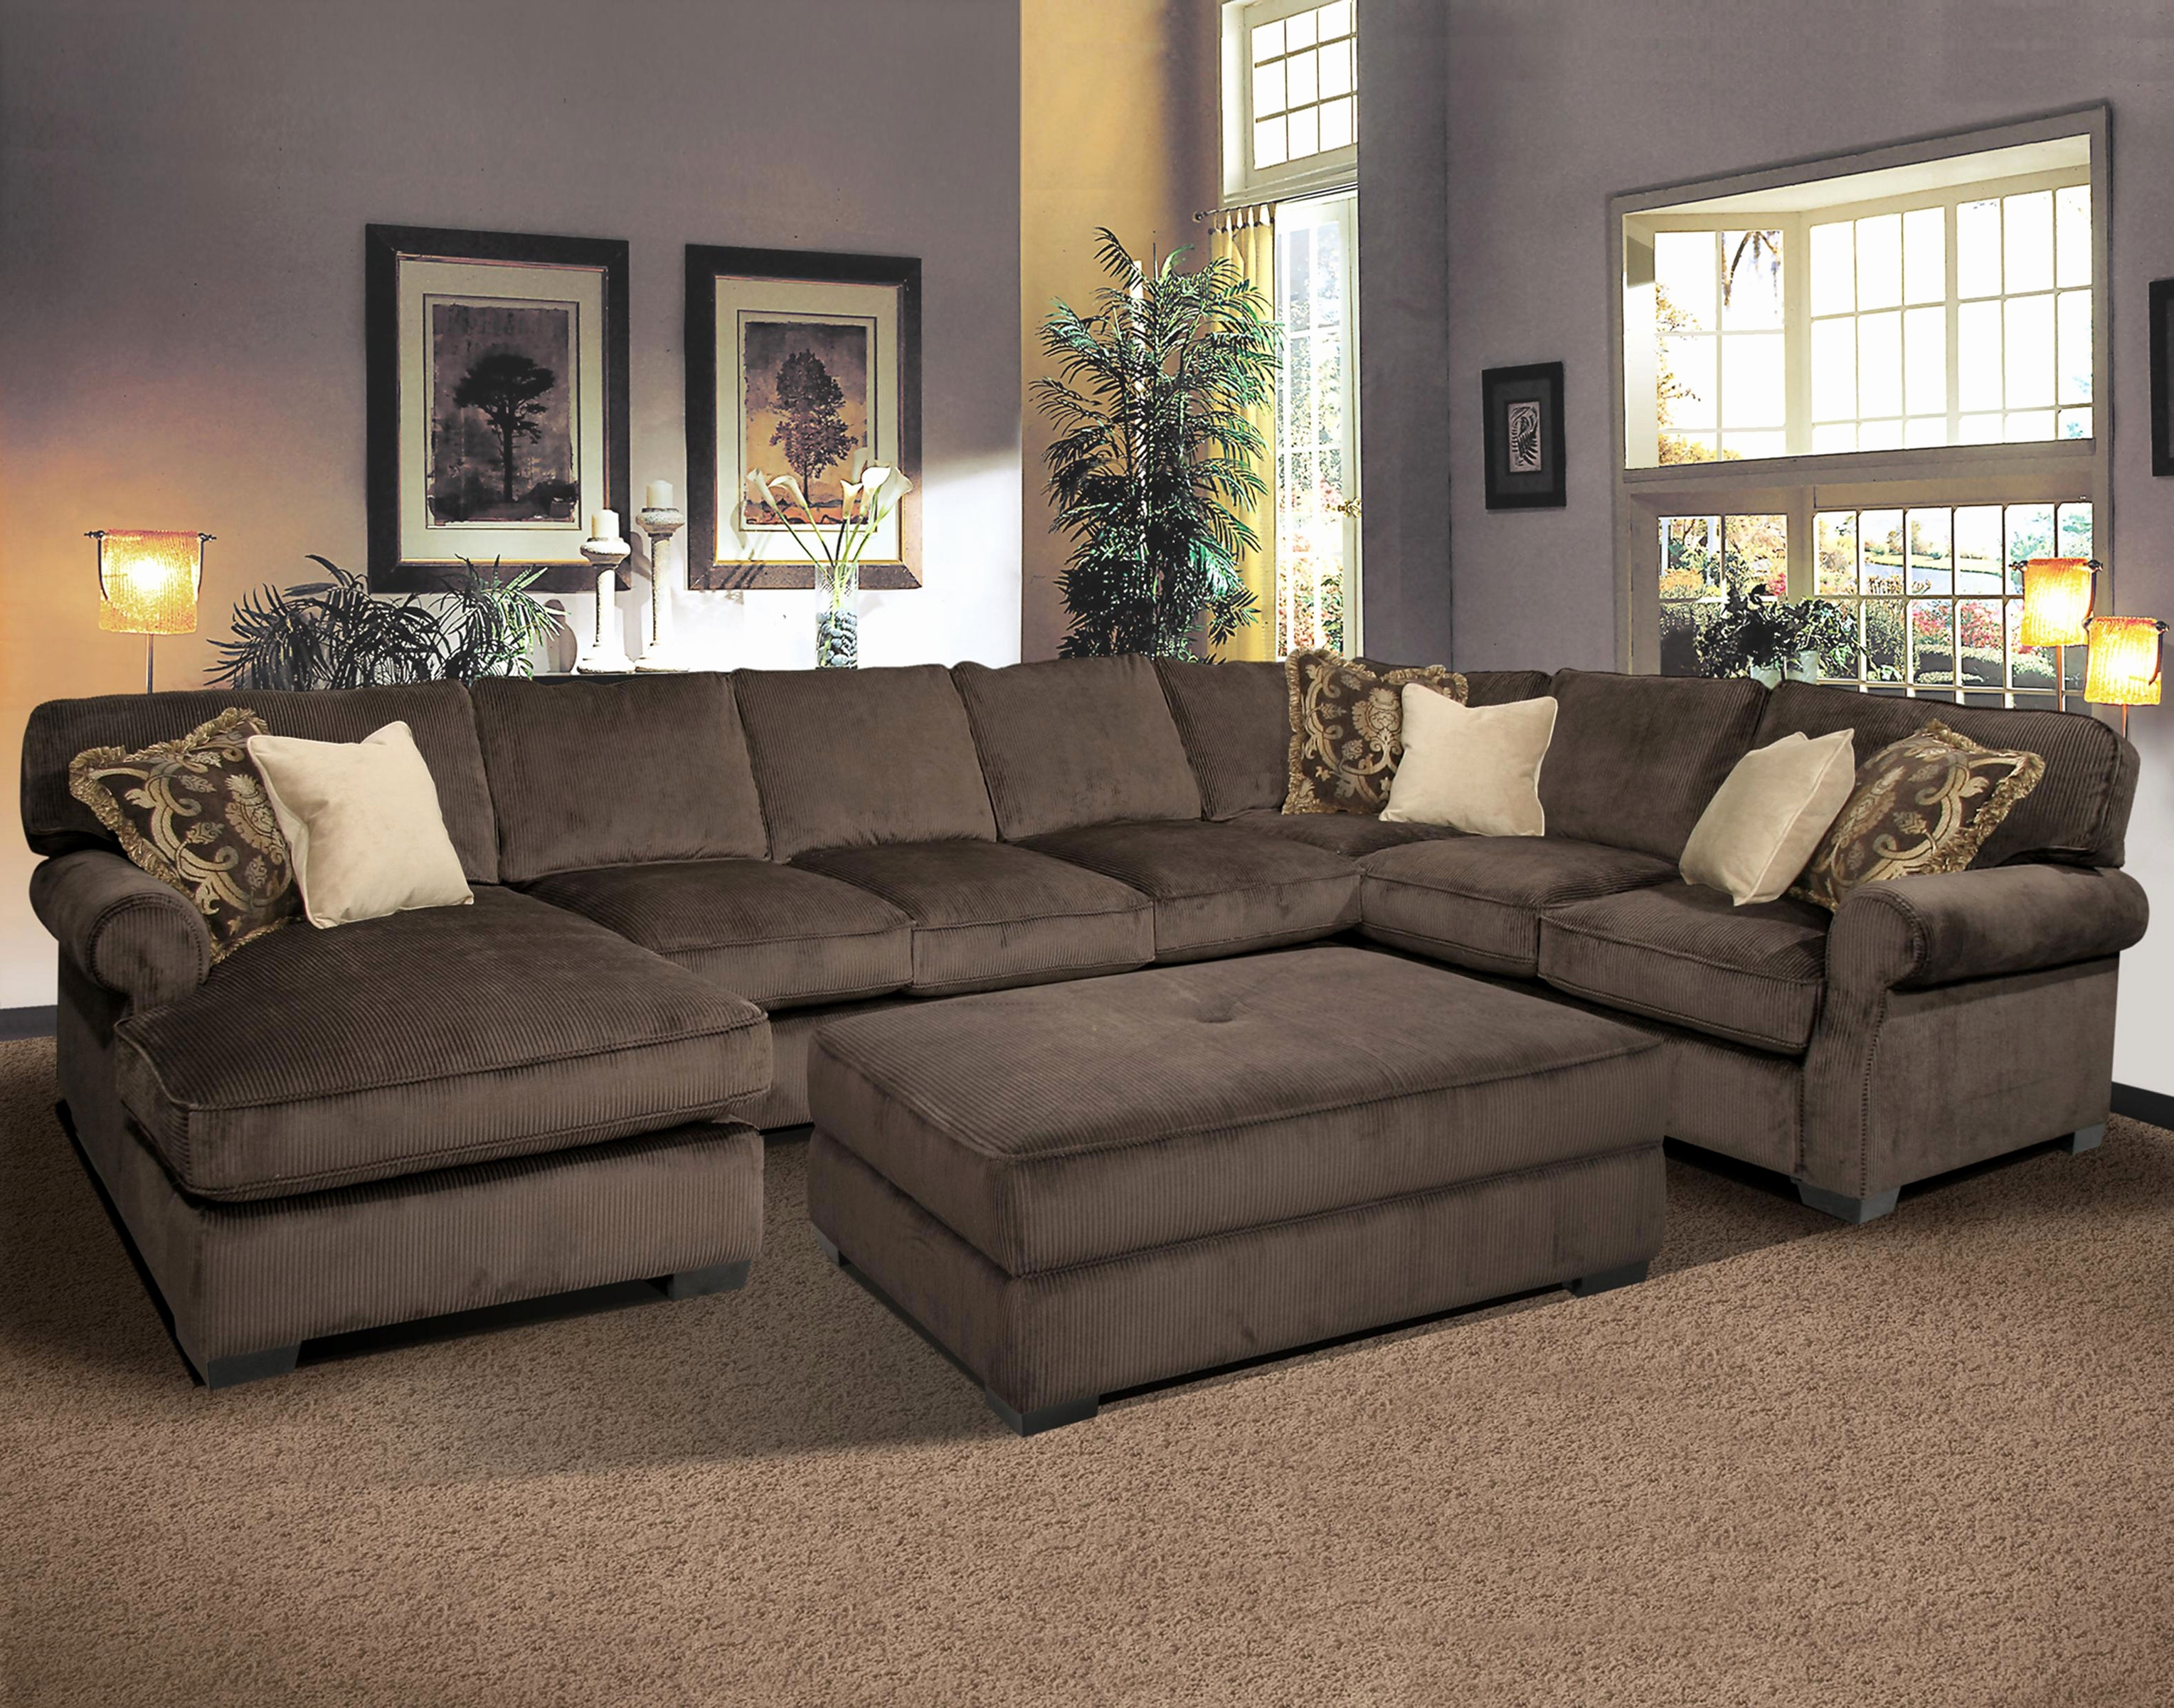 Cheap Furniture Tulsa Luxury Sectional Sofa Sectional Sofas Tulsa Within Tulsa Sectional Sofas (View 5 of 10)